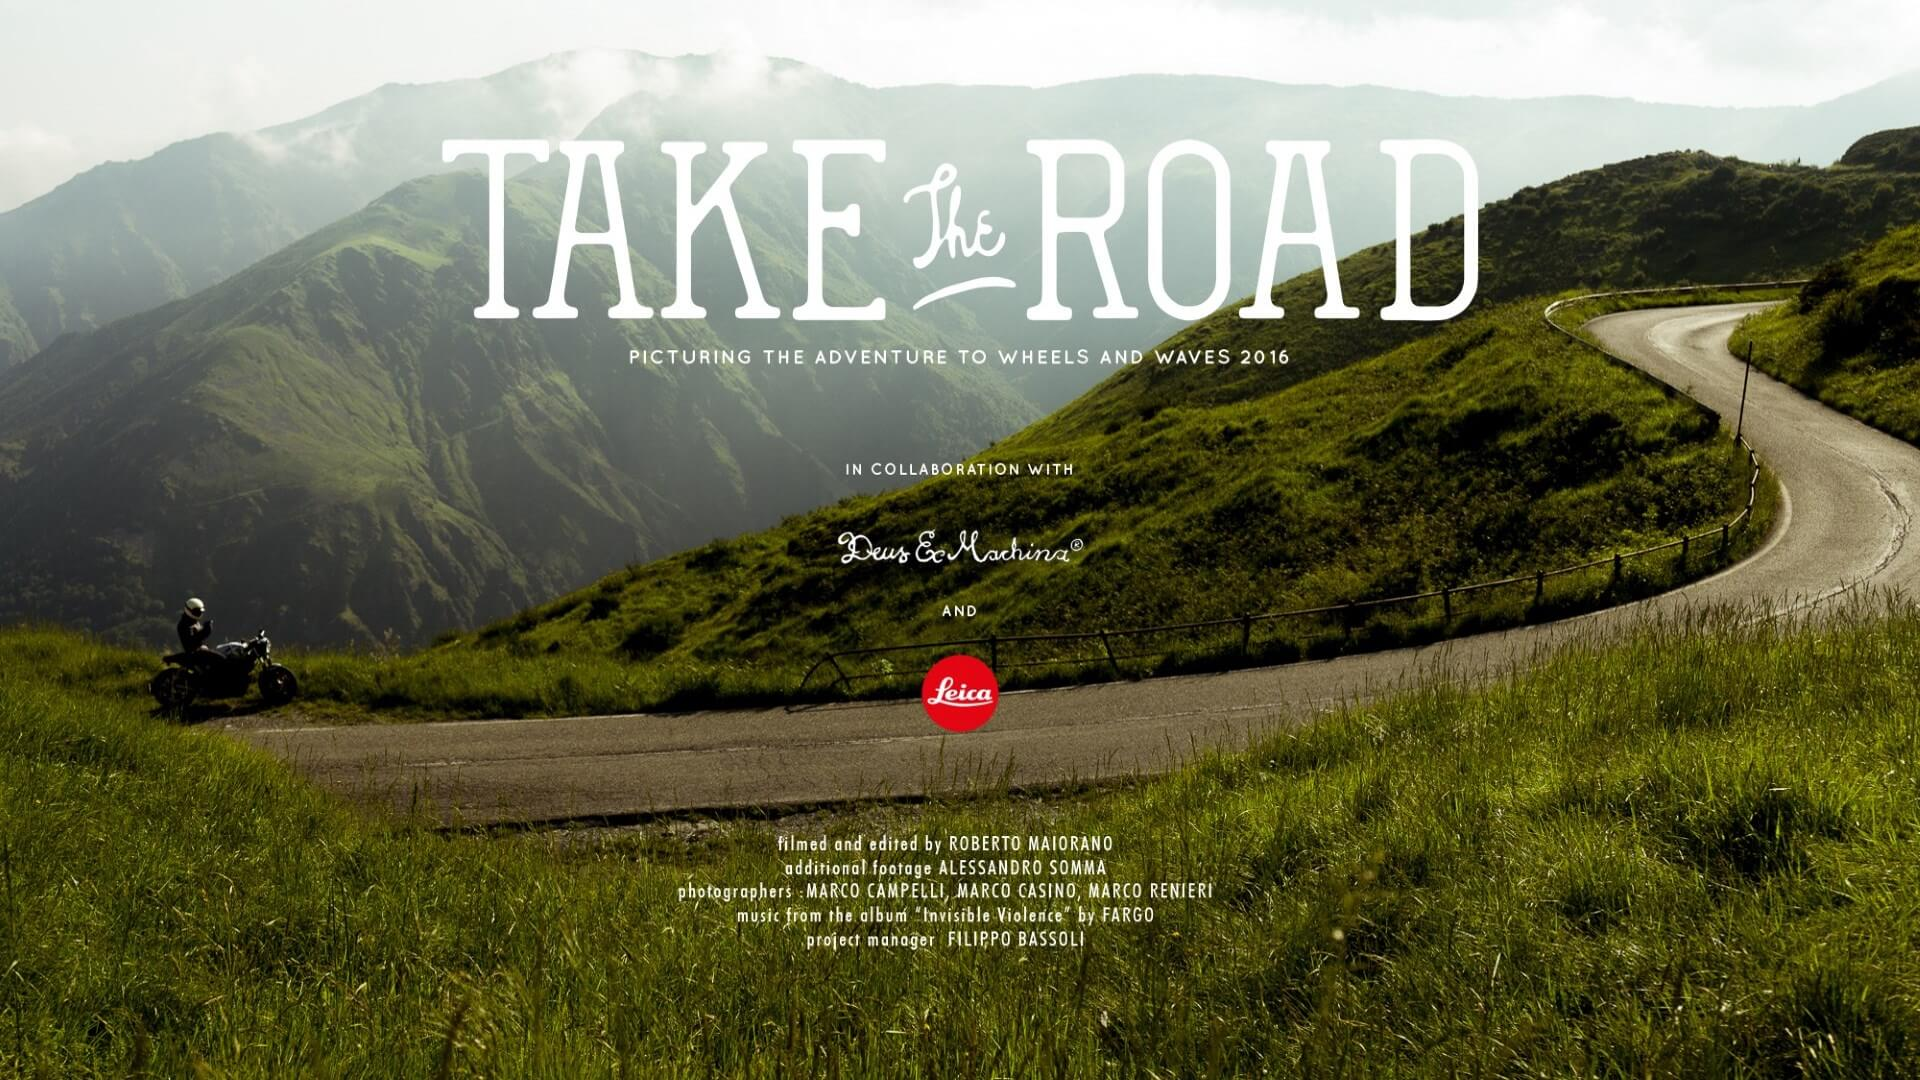 Take the Road